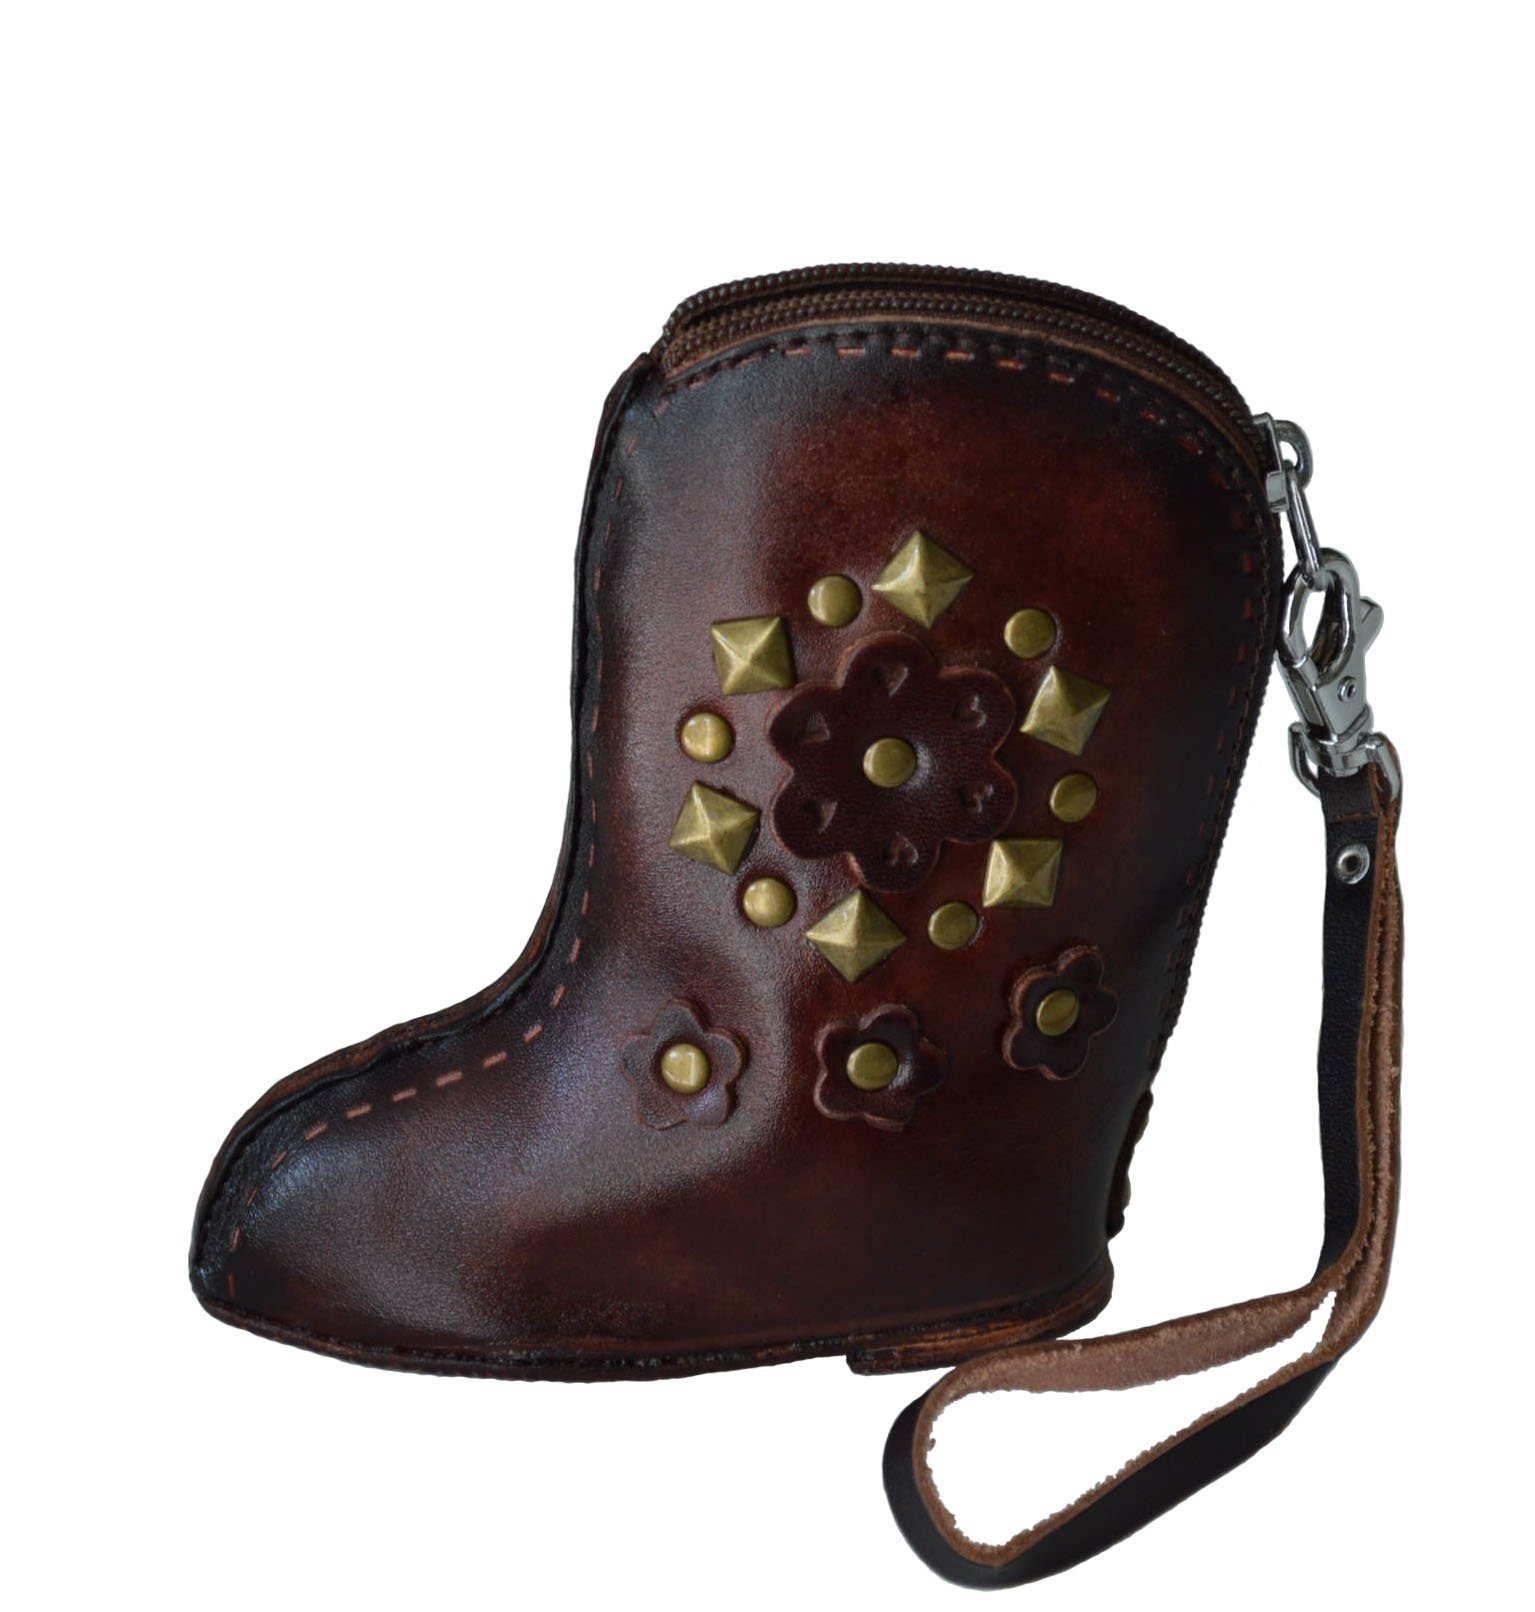 Genuine Leather Wristlet Change Purse, Western Boot Shape, Dark-brown, Zipper